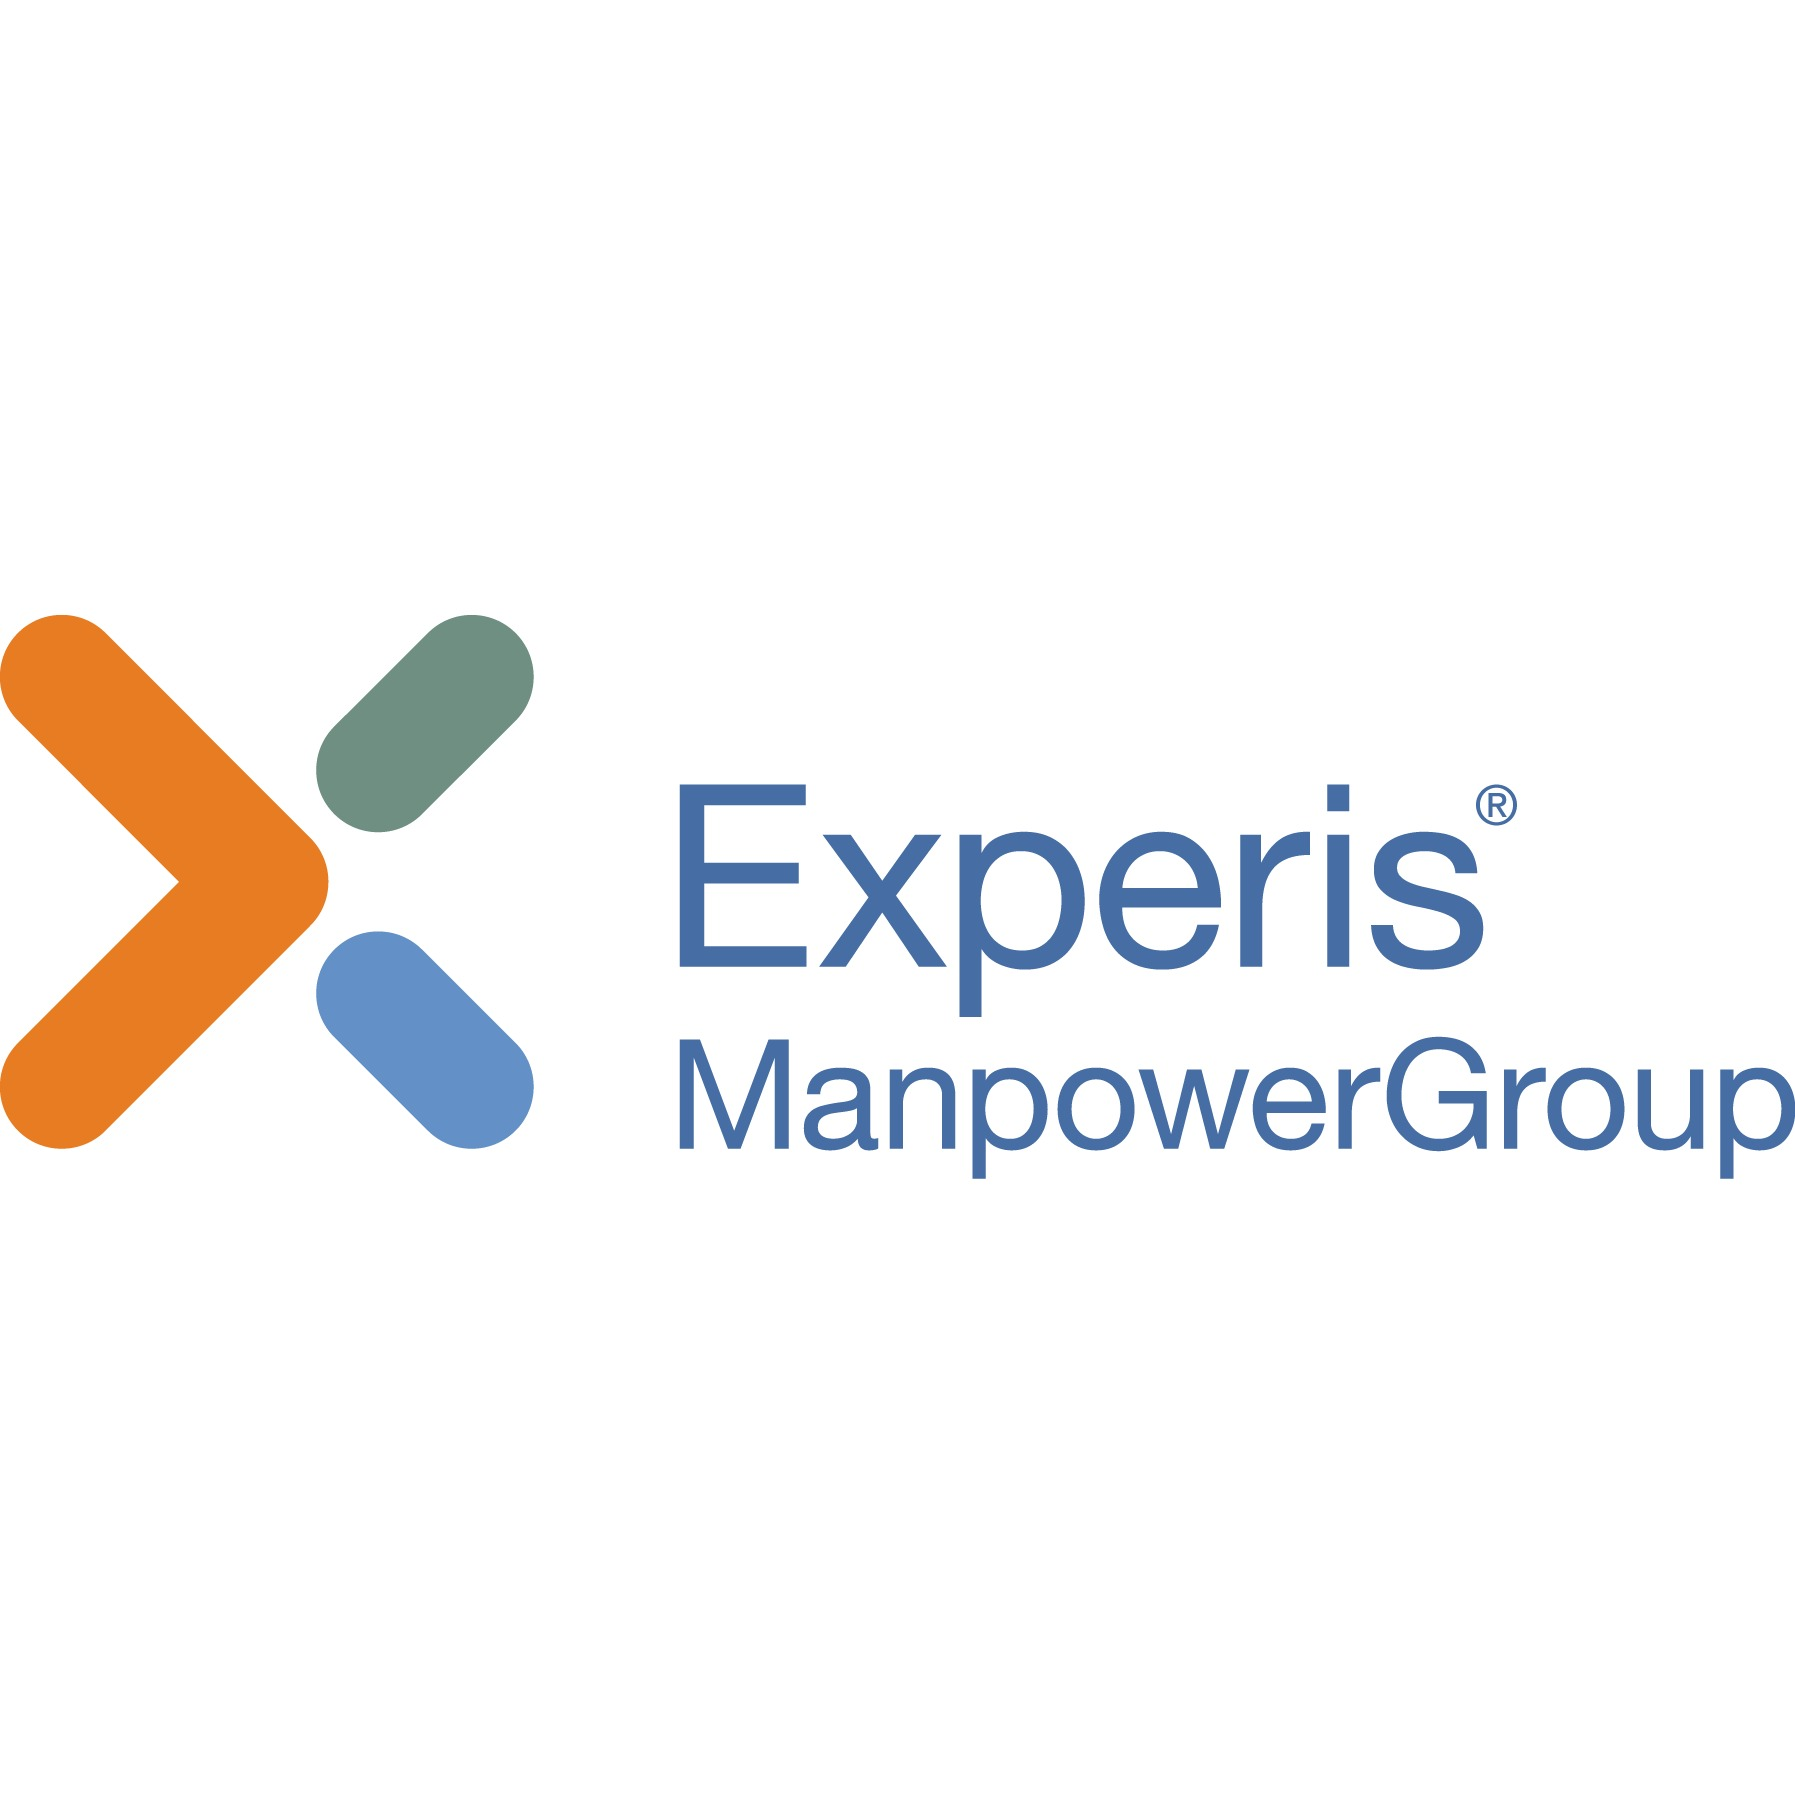 the Experis Manpower Group logo.